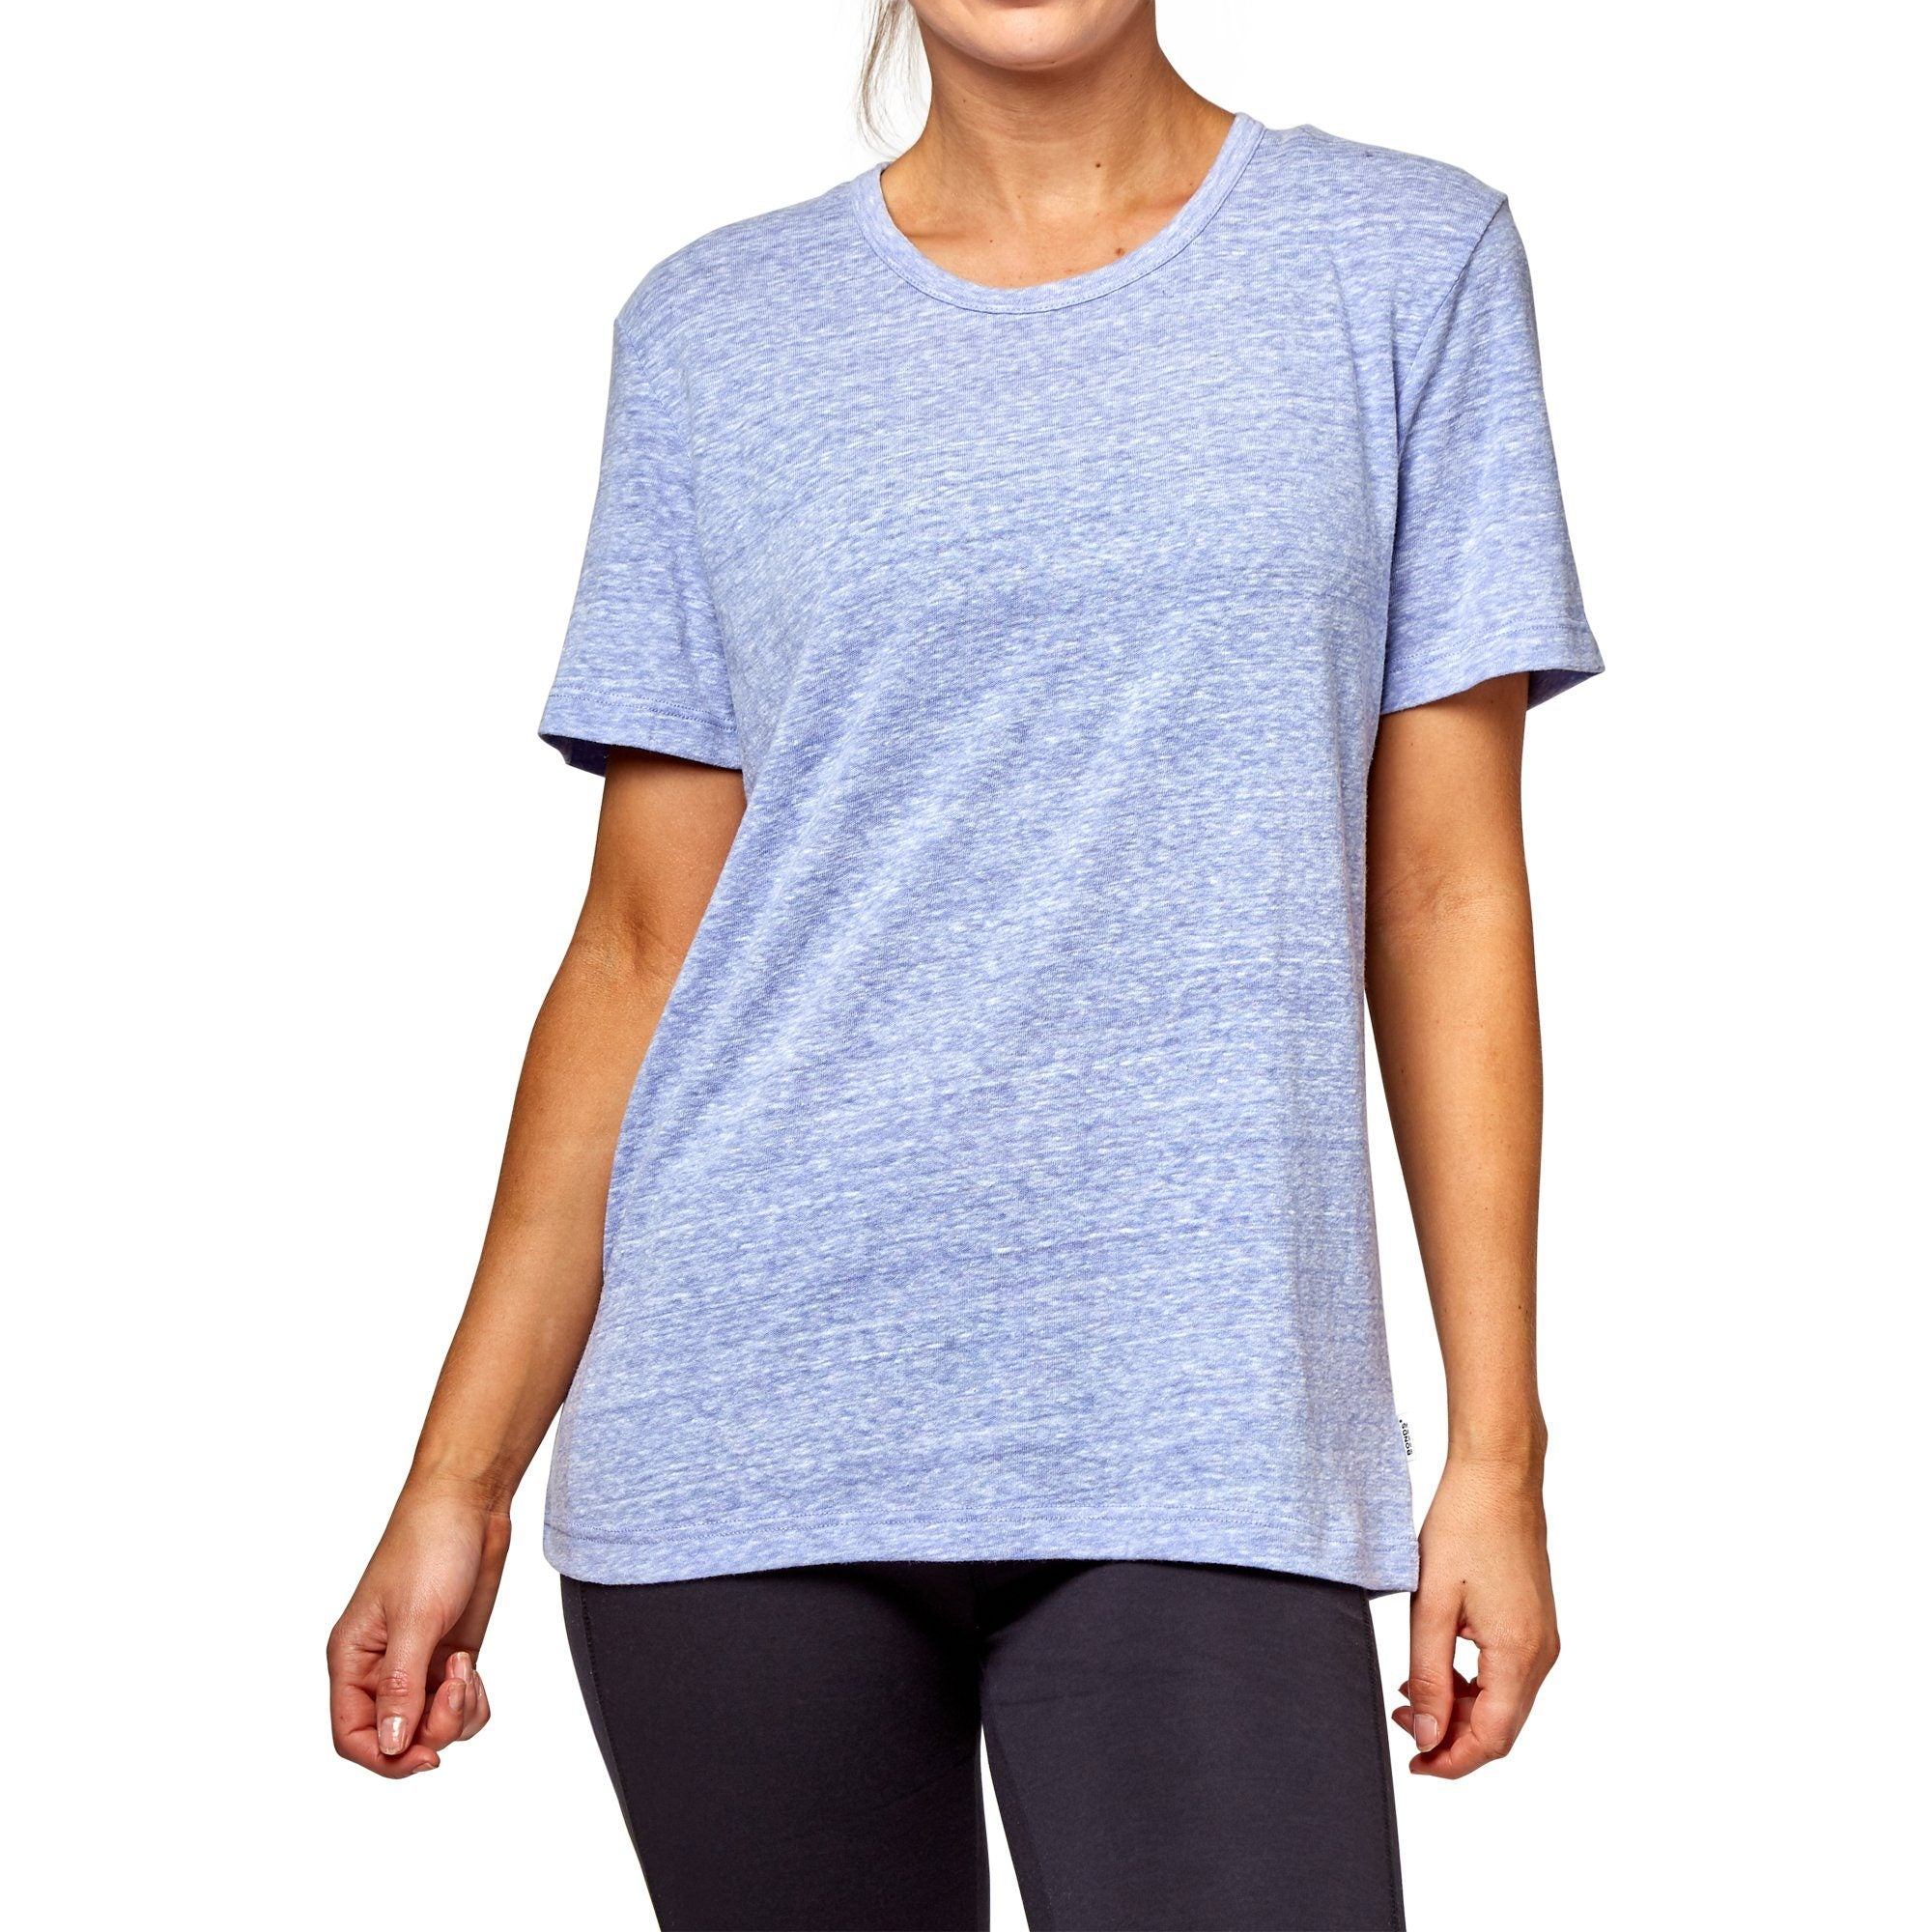 Bonds Women's Triblend Crew Tee - Larkspur Apparel Bonds